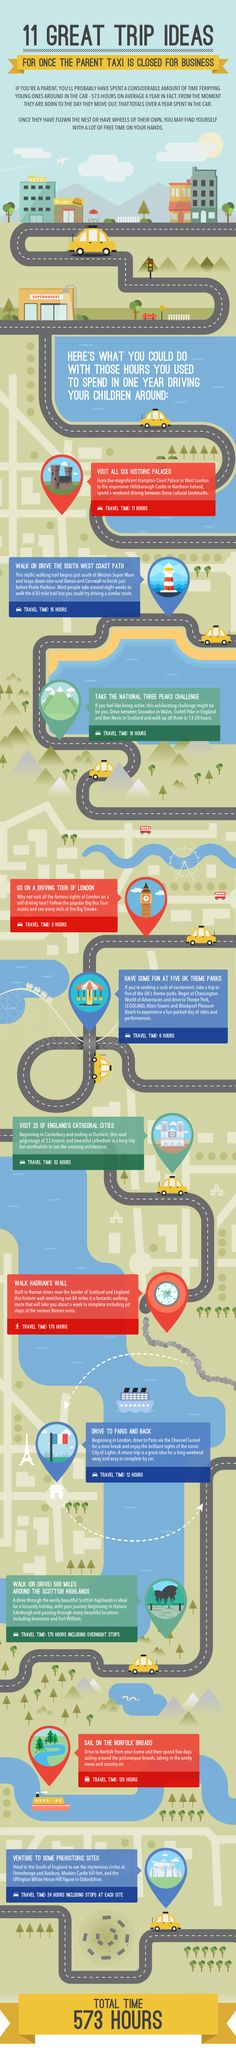 11 Great Trip Ideas: For Once Parent Taxi Is Closed For Business #Infographic…